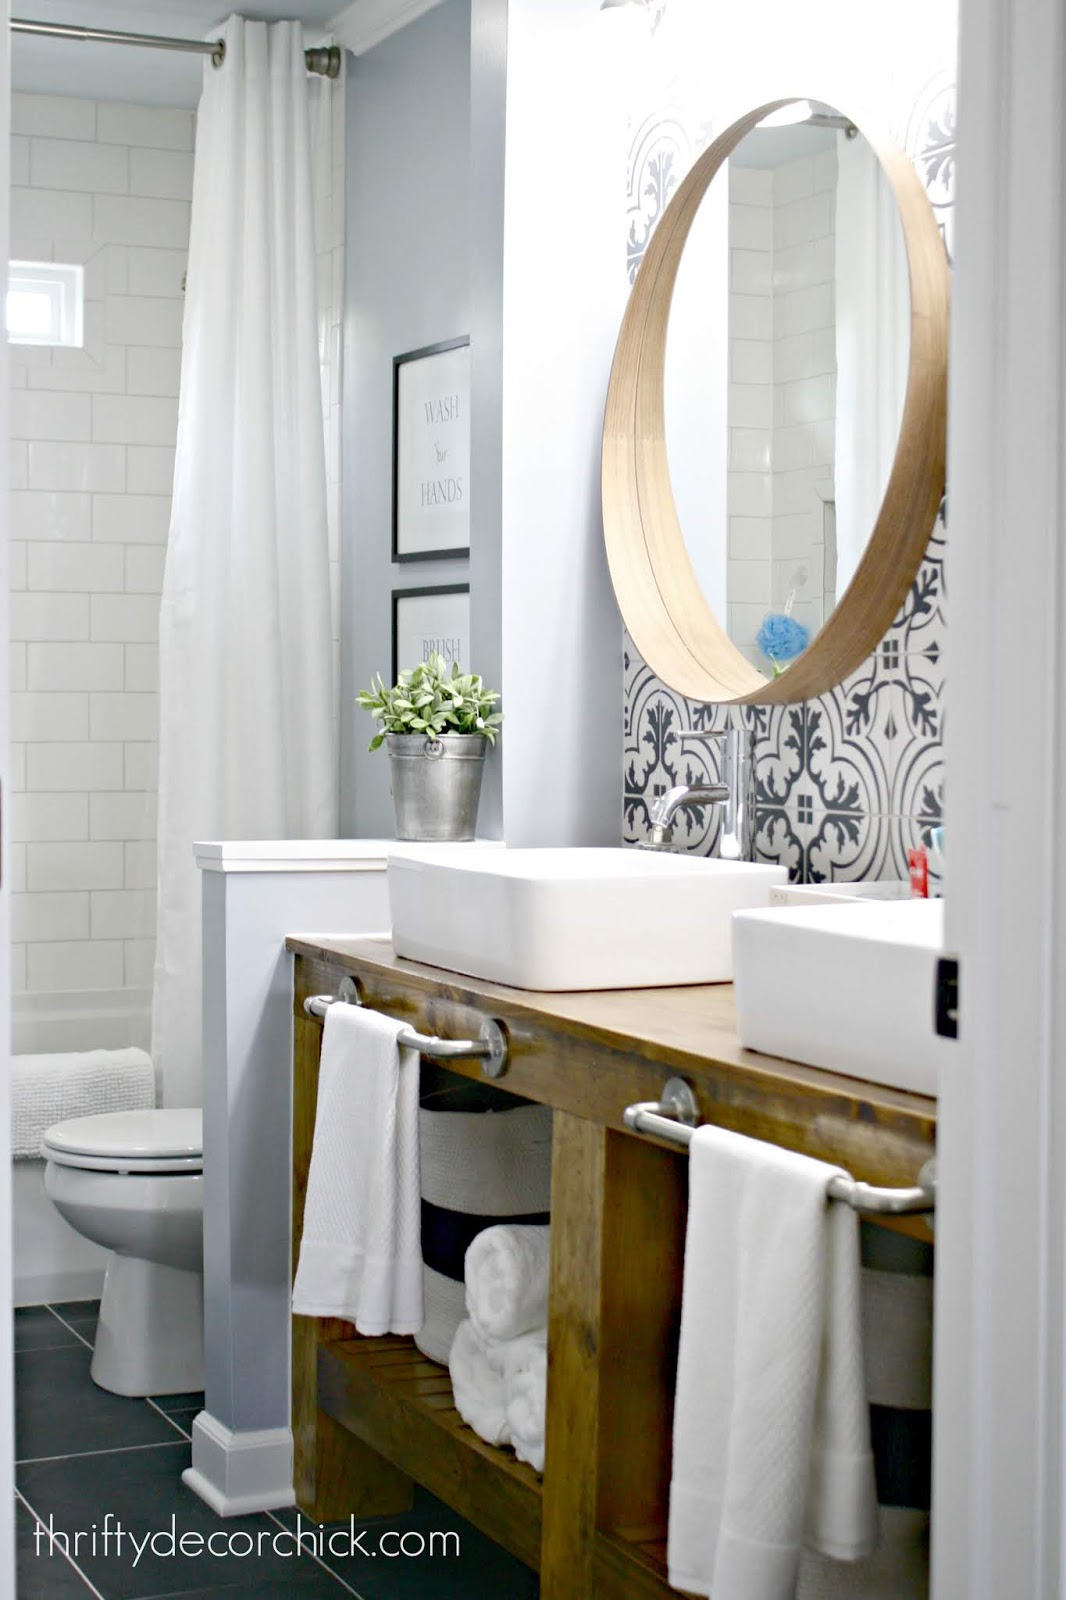 Taking down wall in bathroom makeover